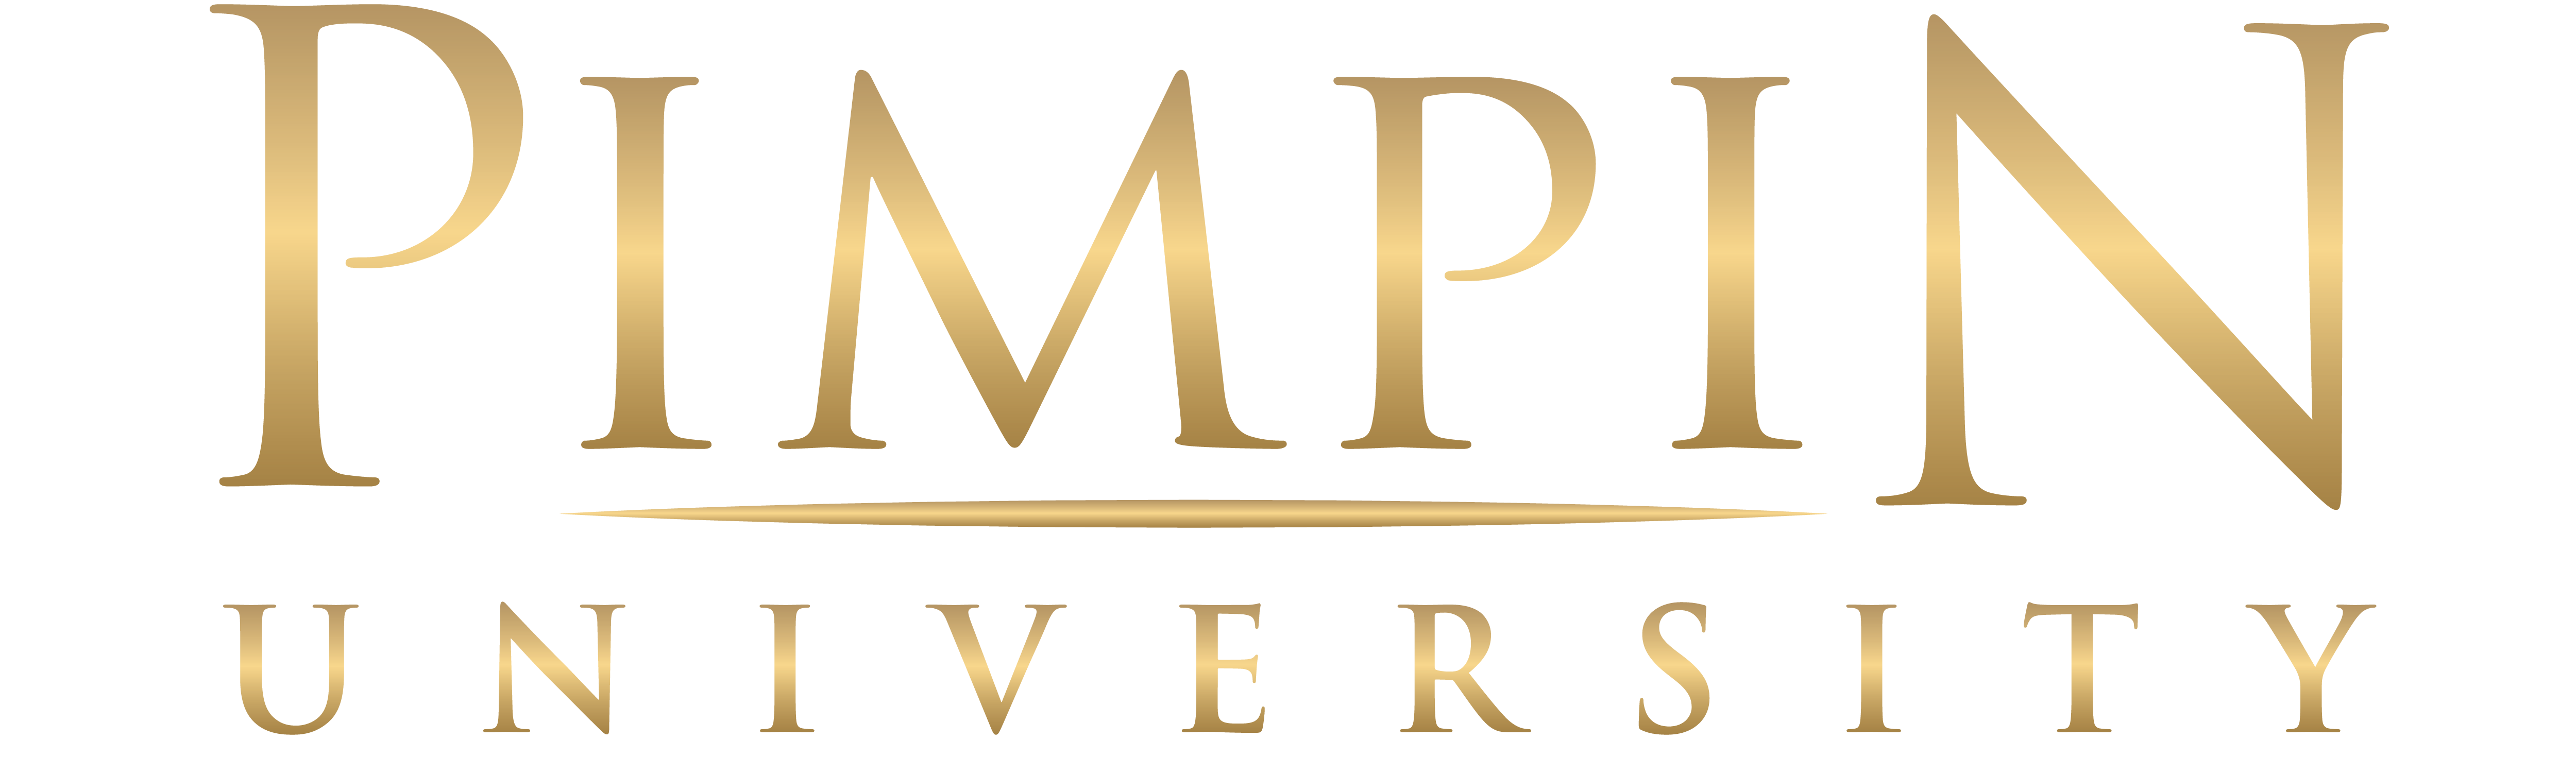 Pimpin University - Dating Love and Relationship Advice - Educating and Fixing Relationships - Empowering and Molding Confident Individuals